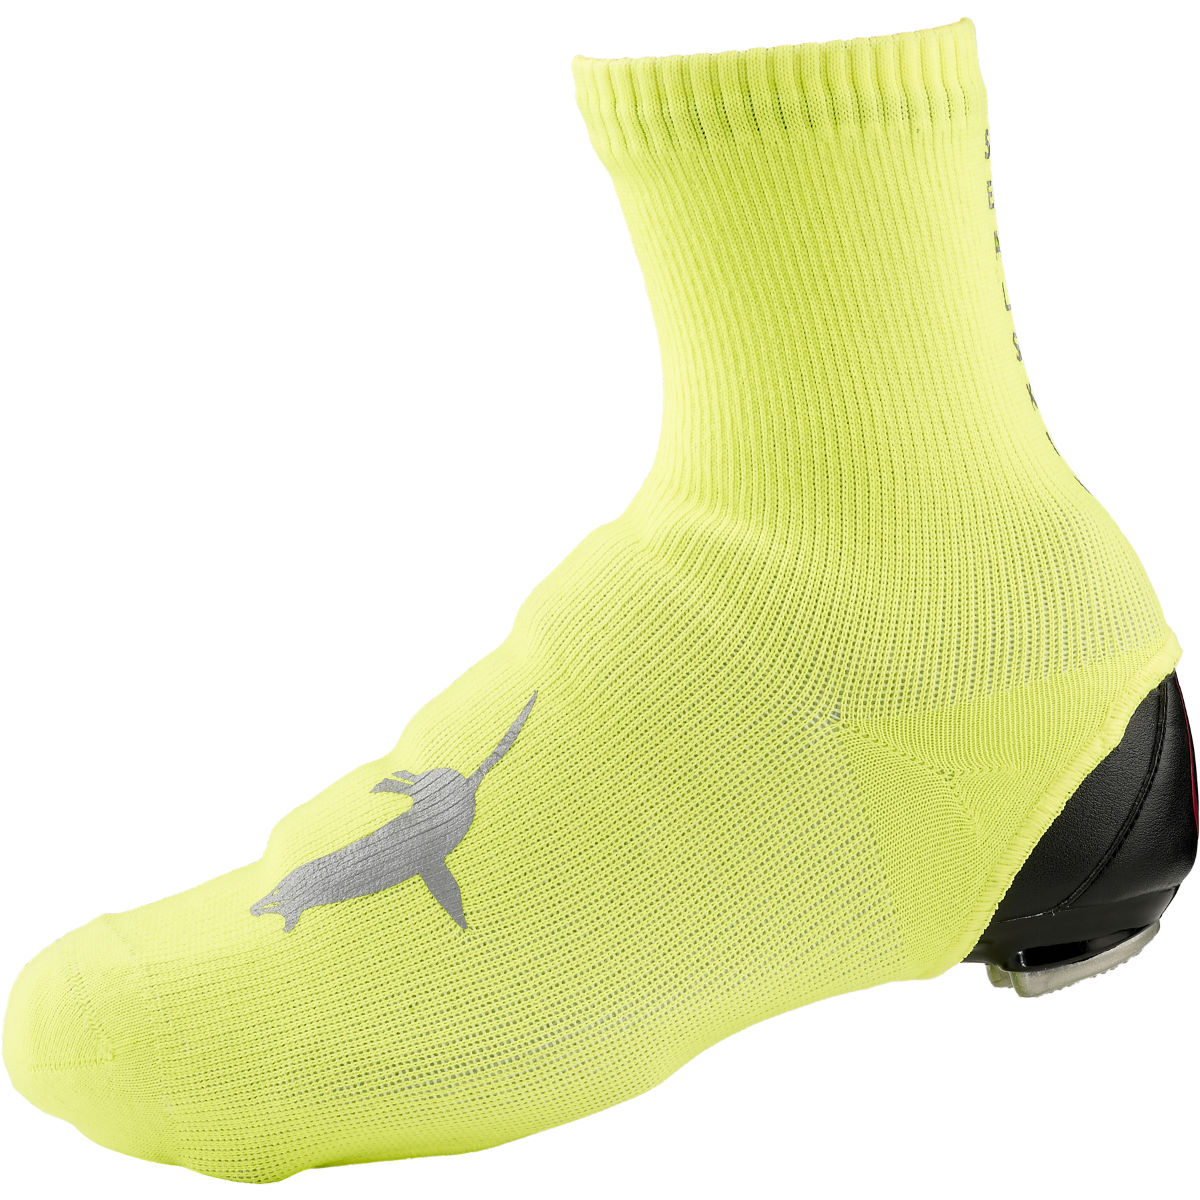 Couvre-chaussures SealSkinz Waterproof - XL Jaune Couvre-chaussures